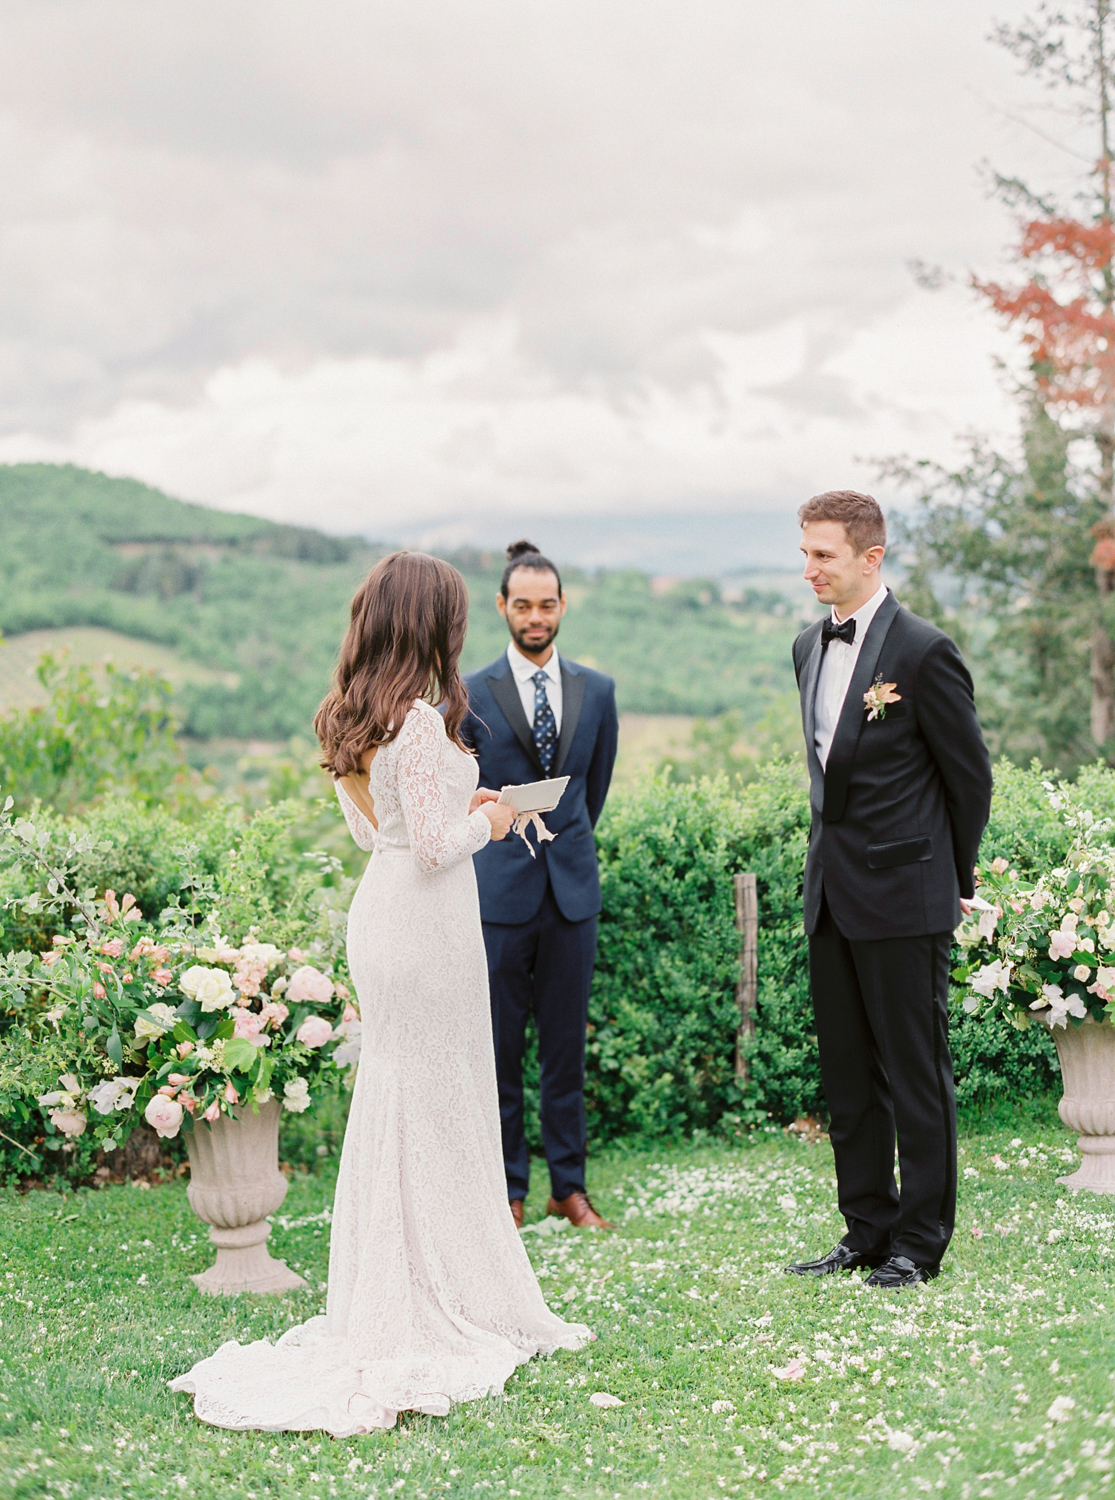 masha golub photography 8 2 - LOVE IN TUSCANY